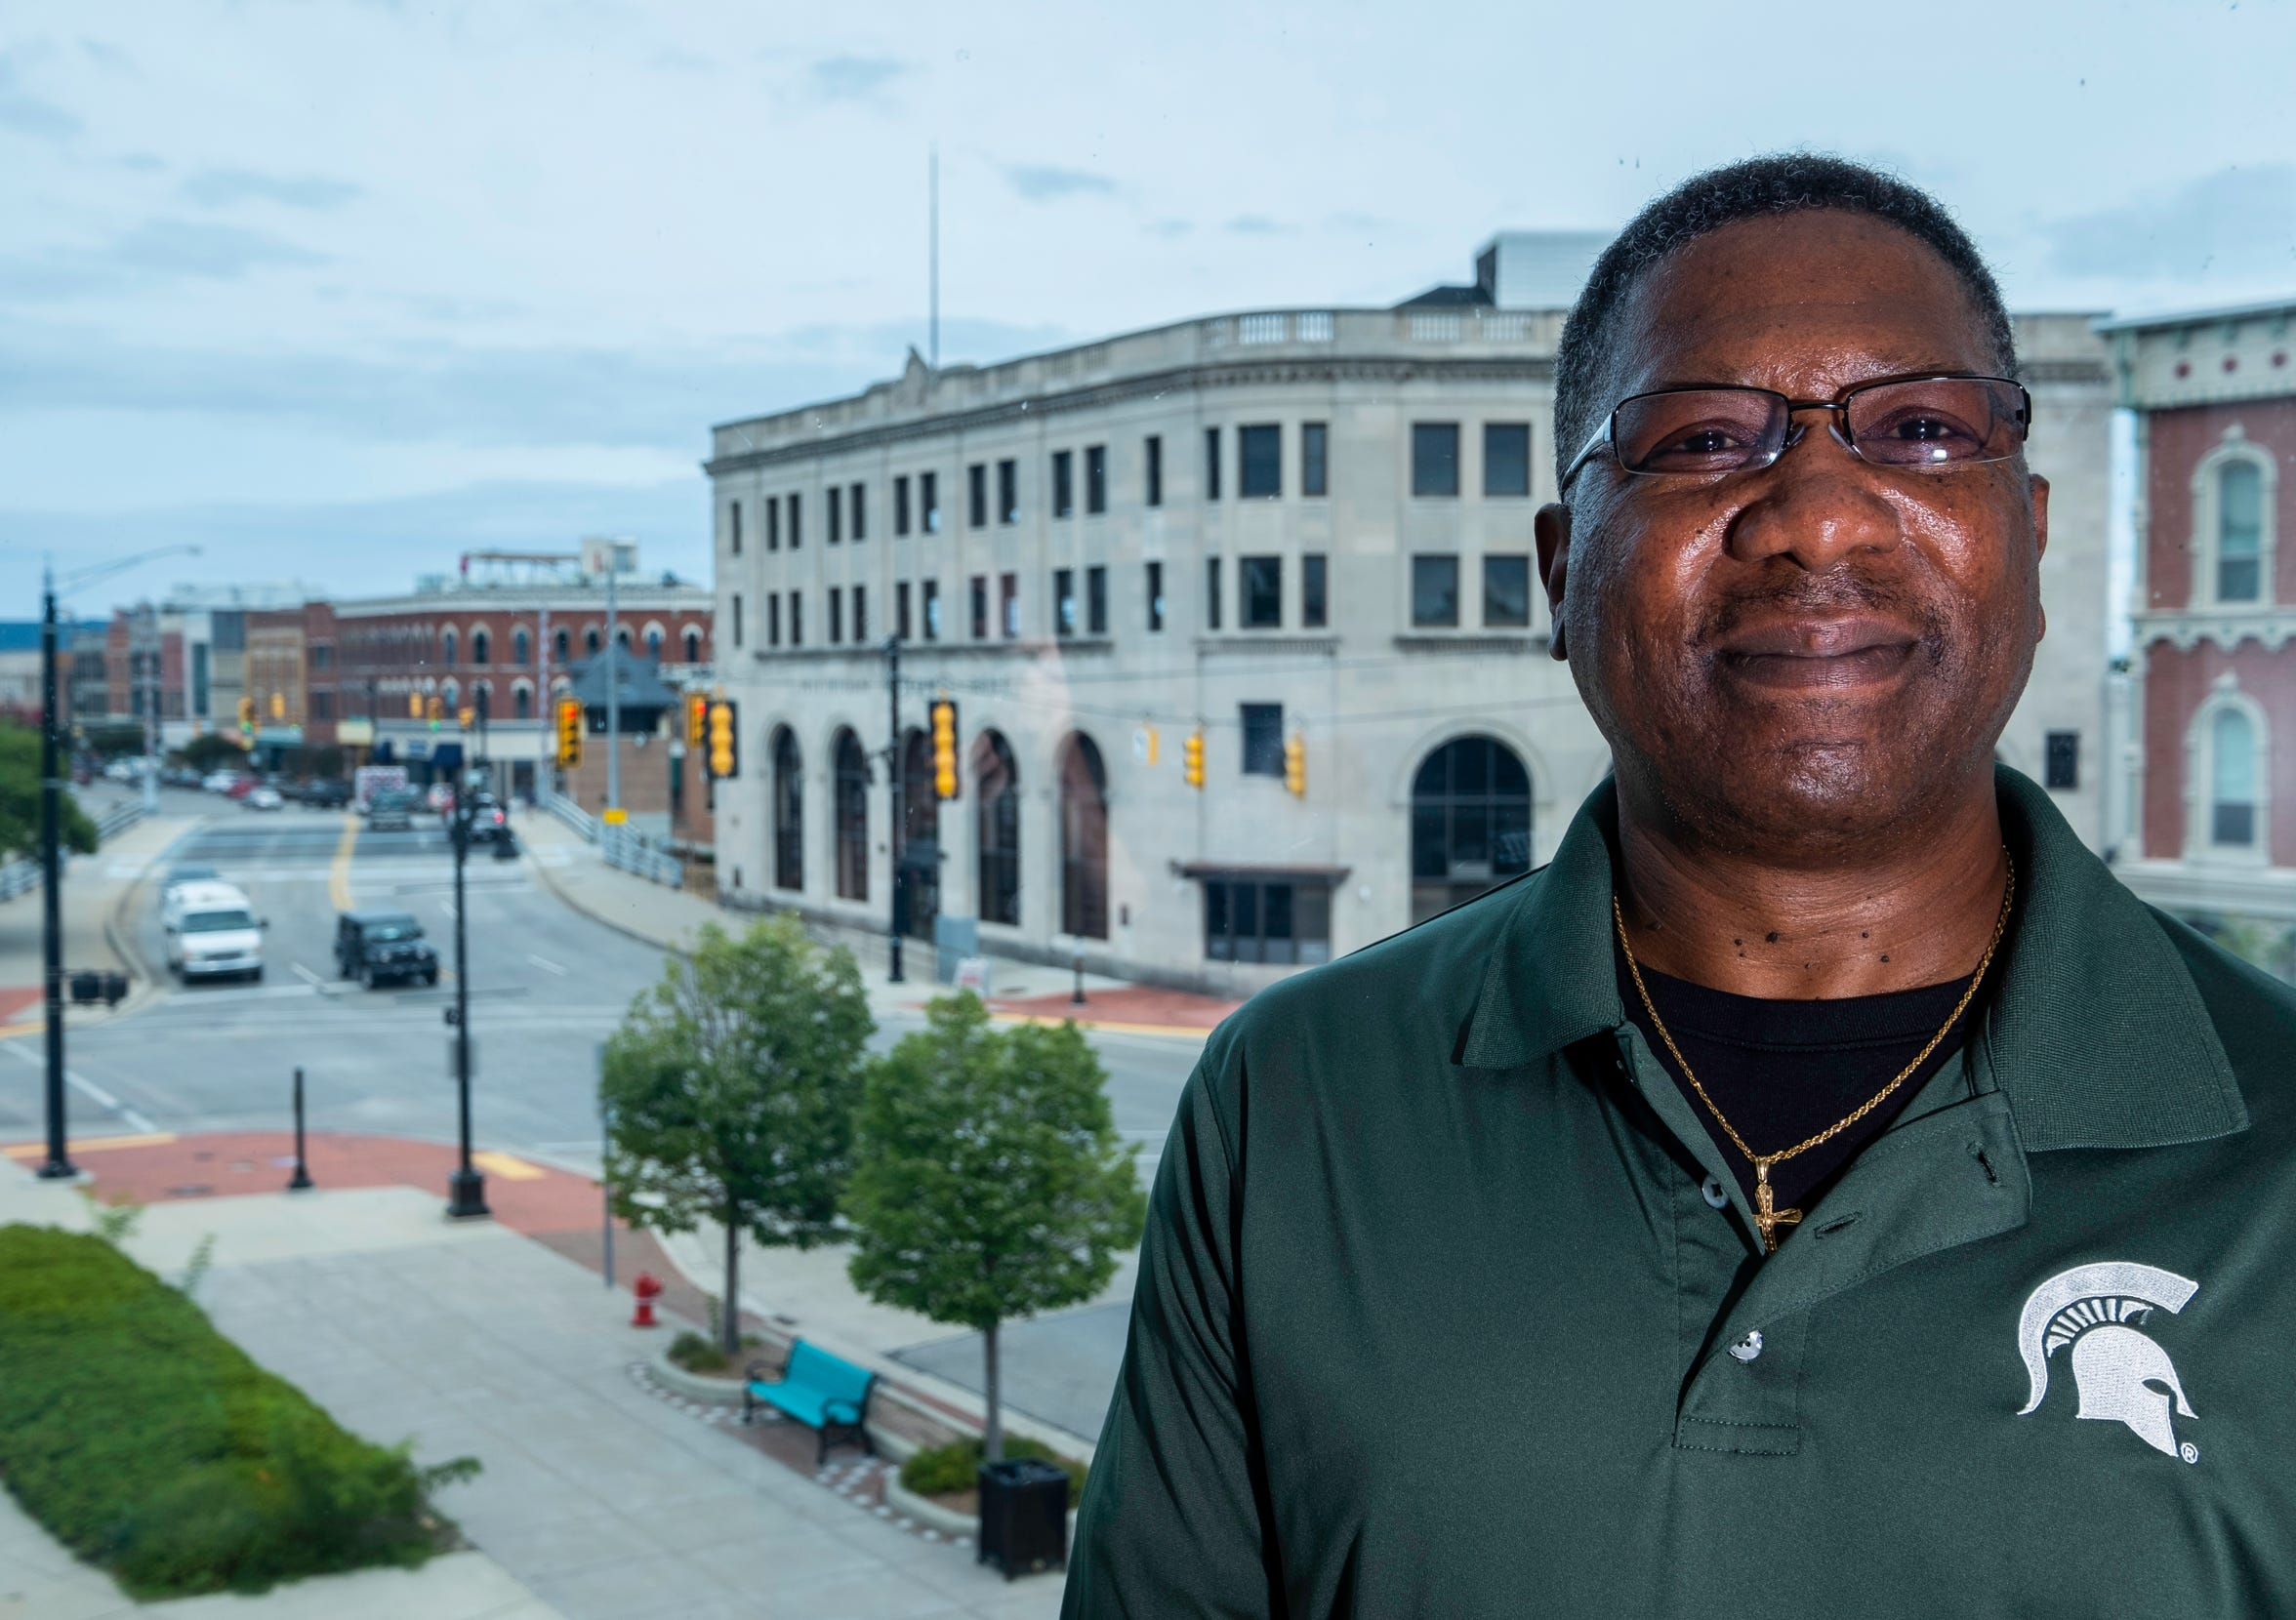 Kevin Watkins, president of the Port Huron branch of the NAACP, poses for a photo in Port Huron Tuesday, Aug. 27, 2019. Watkins shared share his experiences and thoughts on racism in the area, as well as  ideas on how to move forward and address it.